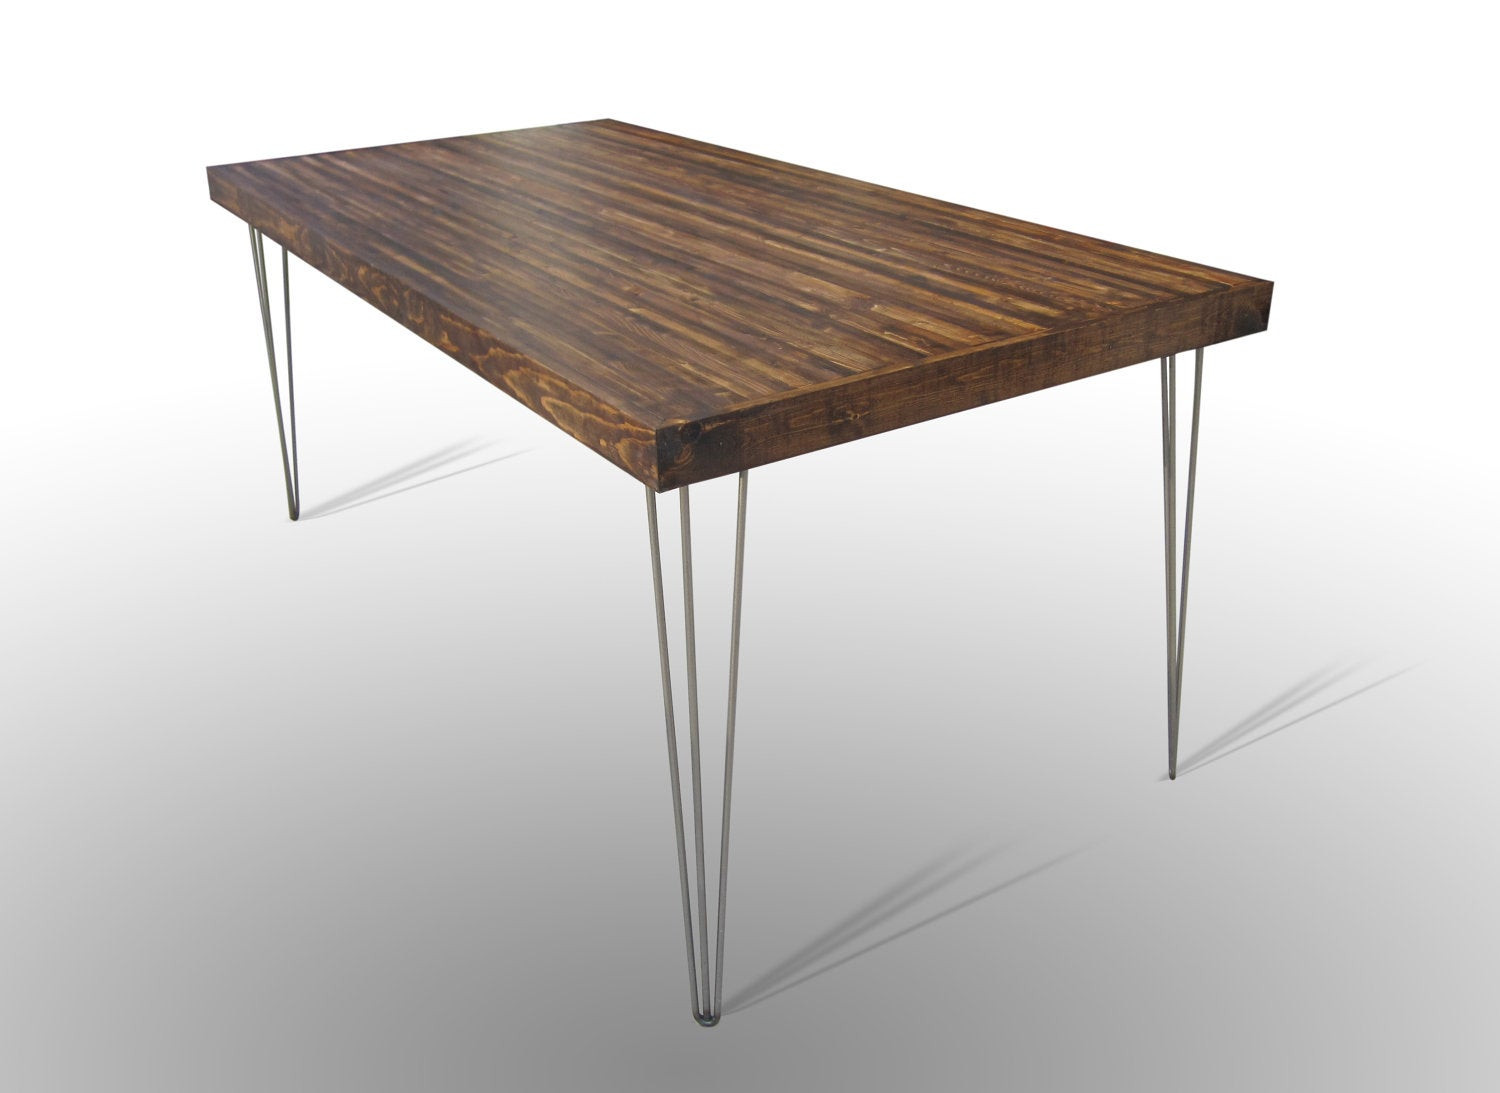 Best ideas about Dining Table Legs . Save or Pin 72x36 Dining Table With Hairpin Legs Harvest Dark Ale Now.